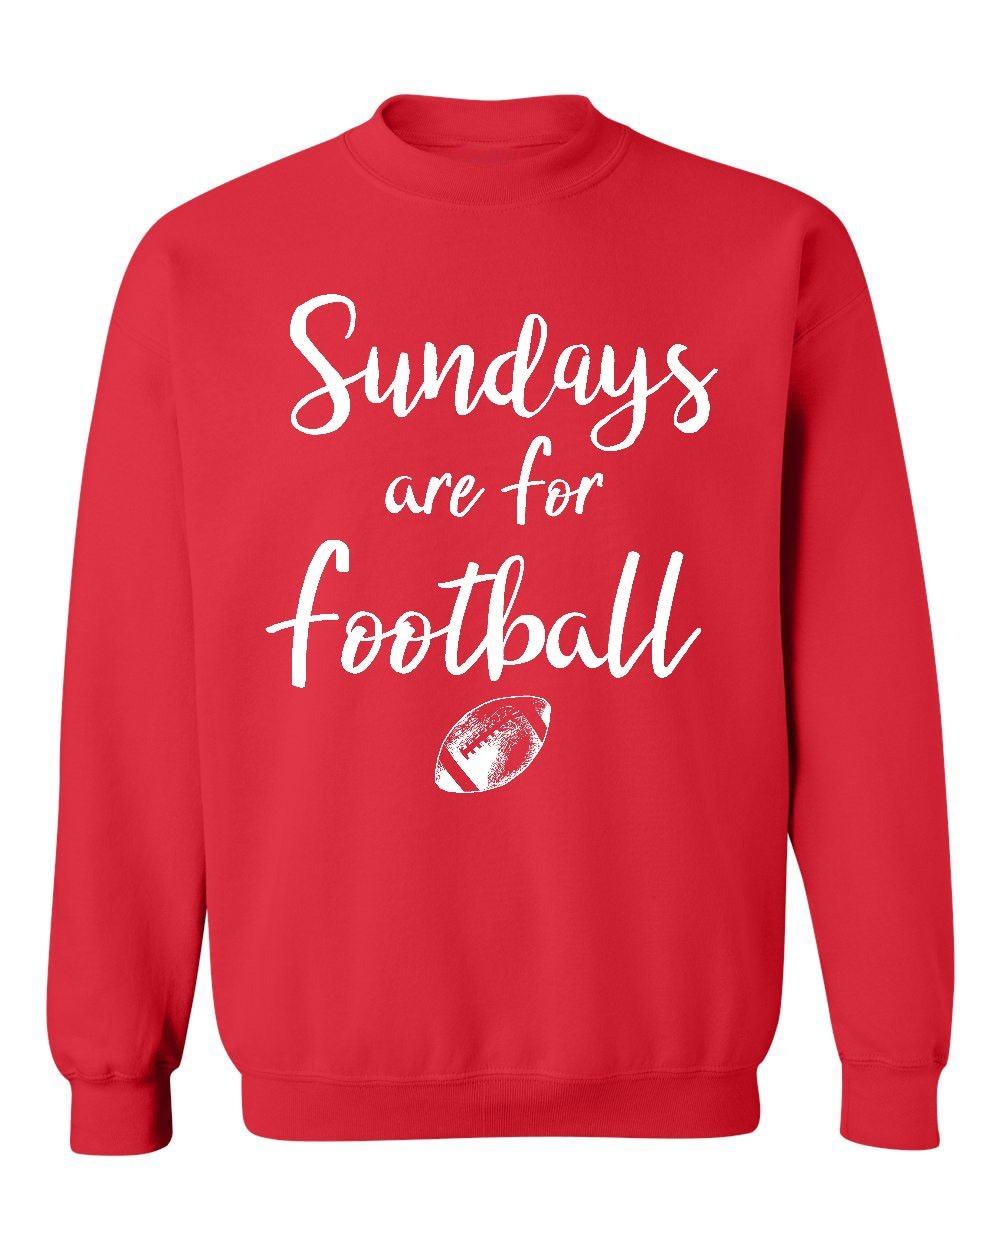 Promotion & Beyond Sundays Are For Football Funny Sports Crewneck Sweatshirt